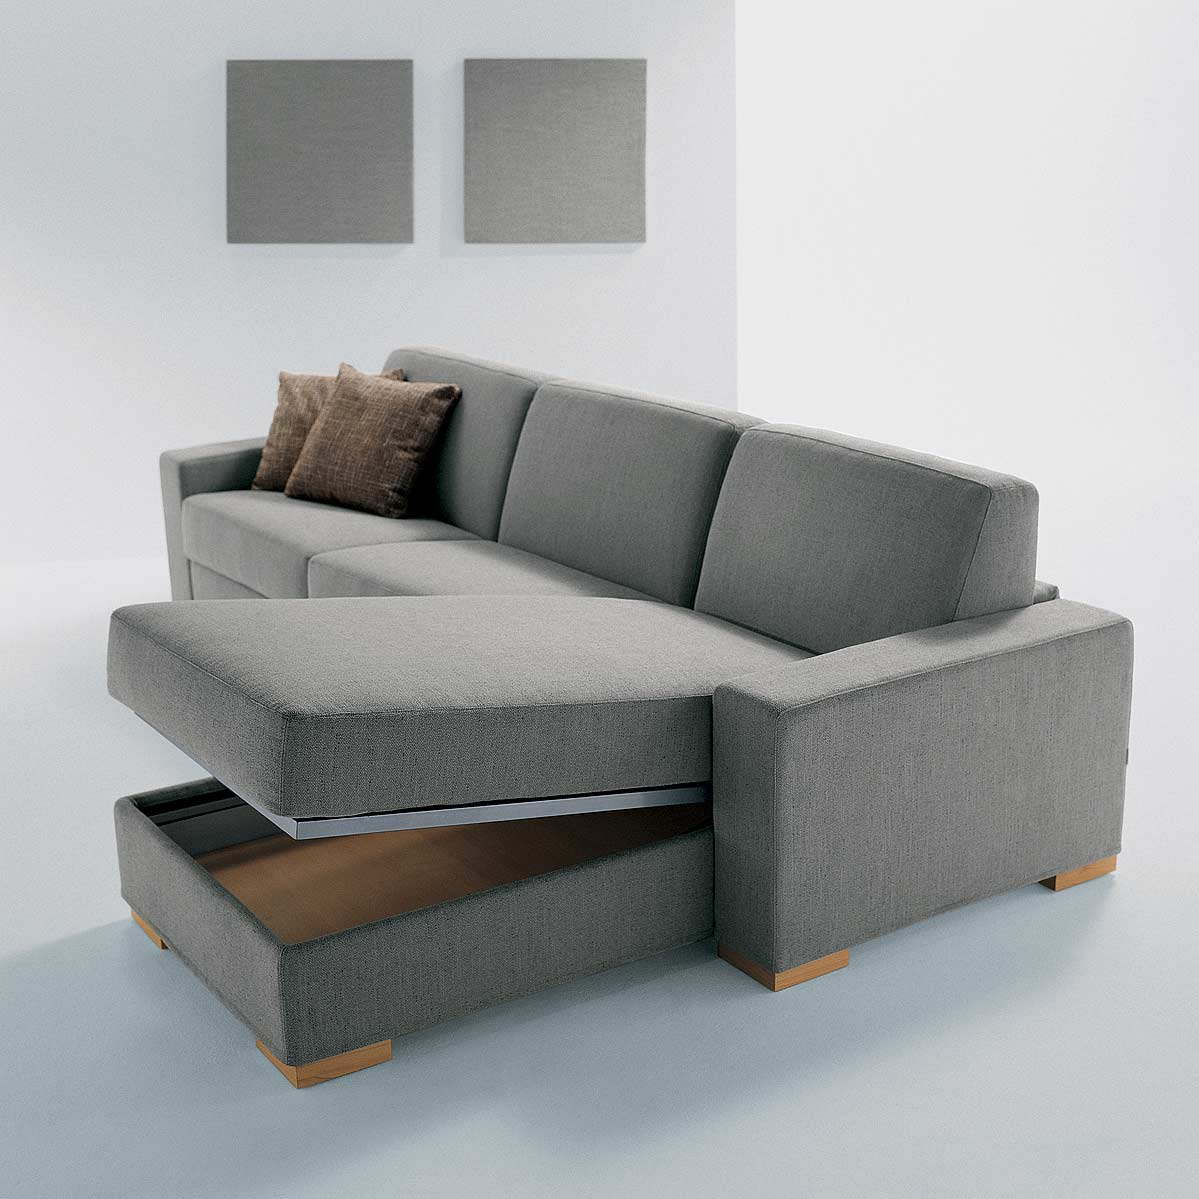 Click clack sofa bed sofa chair bed modern leather sofa bed ikea convertible sofa bed Couch futon bed